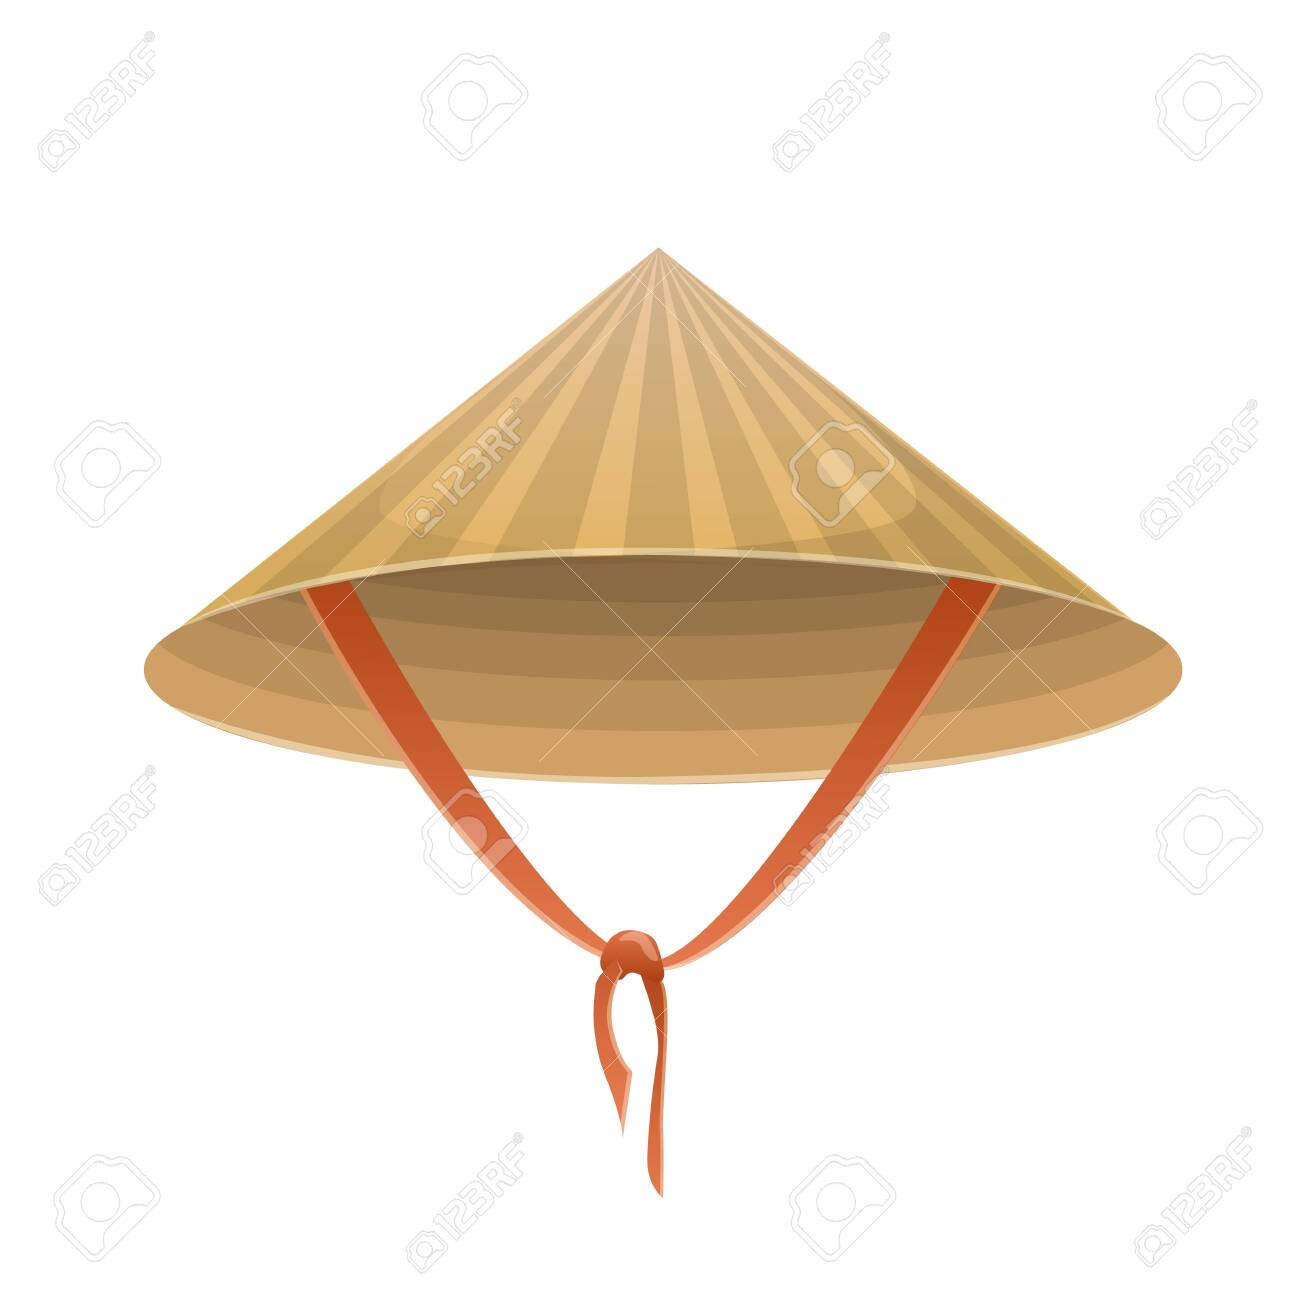 Chinese hat in the form of a cone with a tie on a white background. - 138367641